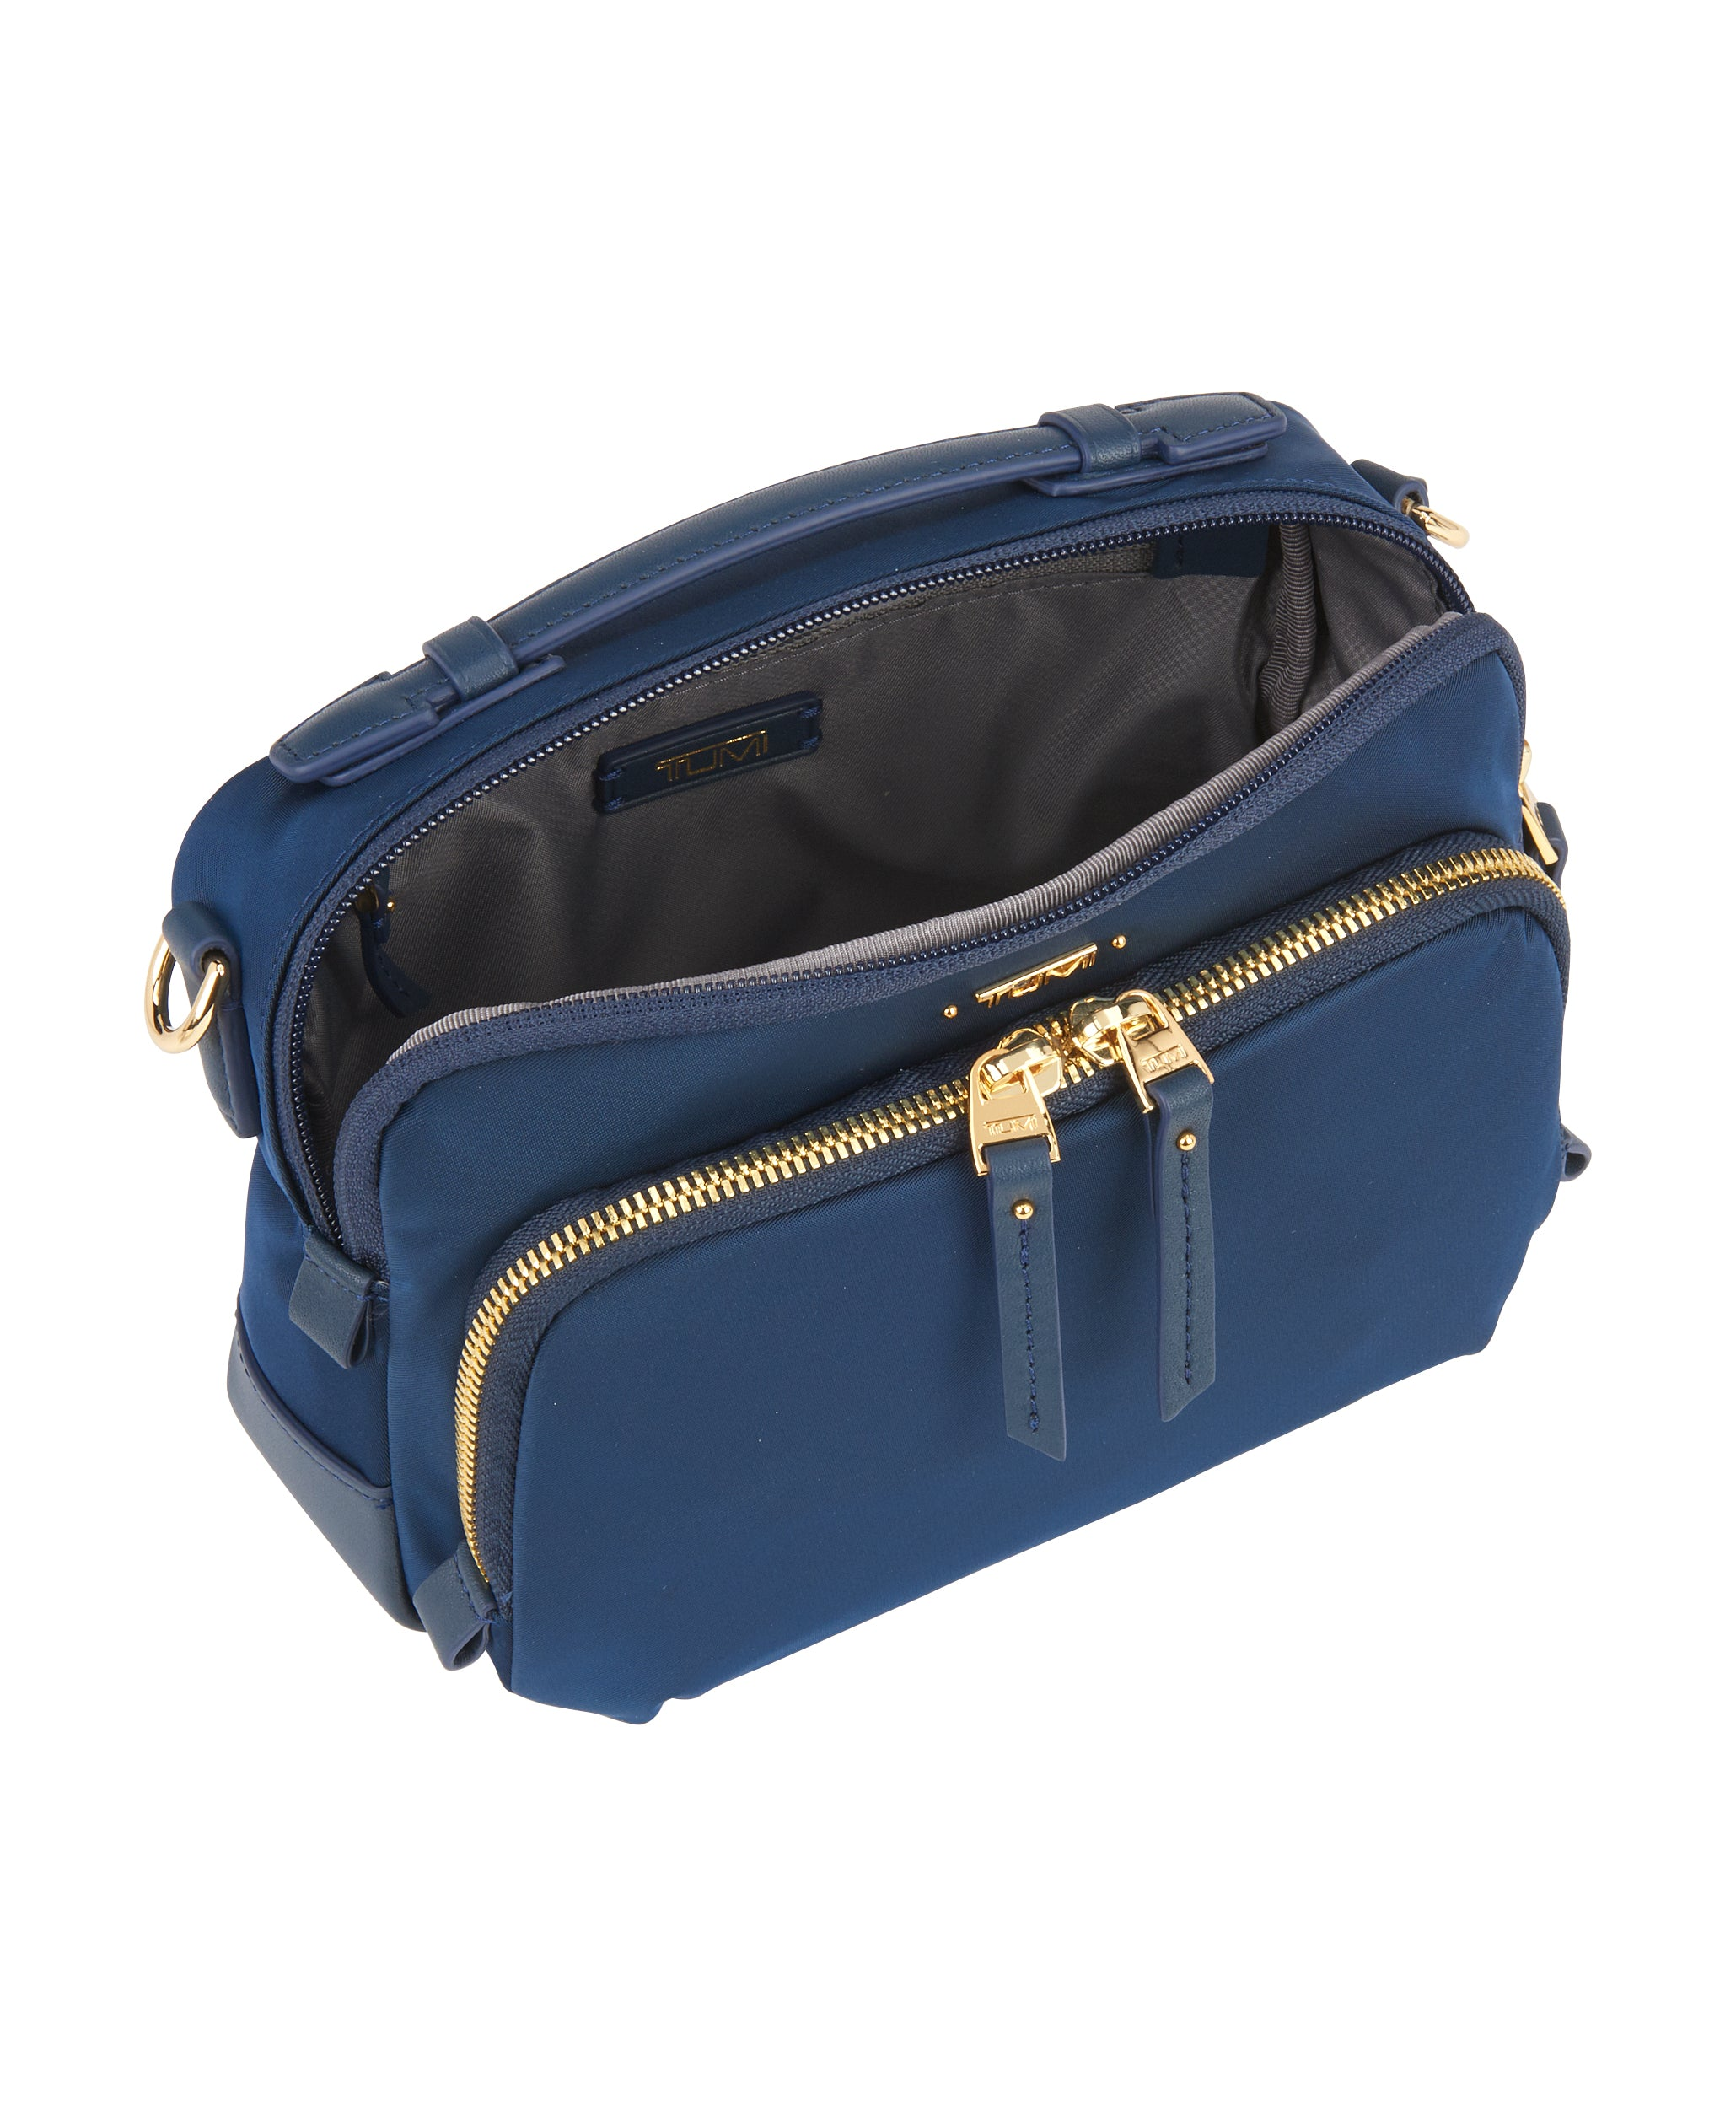 Tumi Voyageur  Luanda Flight Bag - Ocean Blue | MEGO